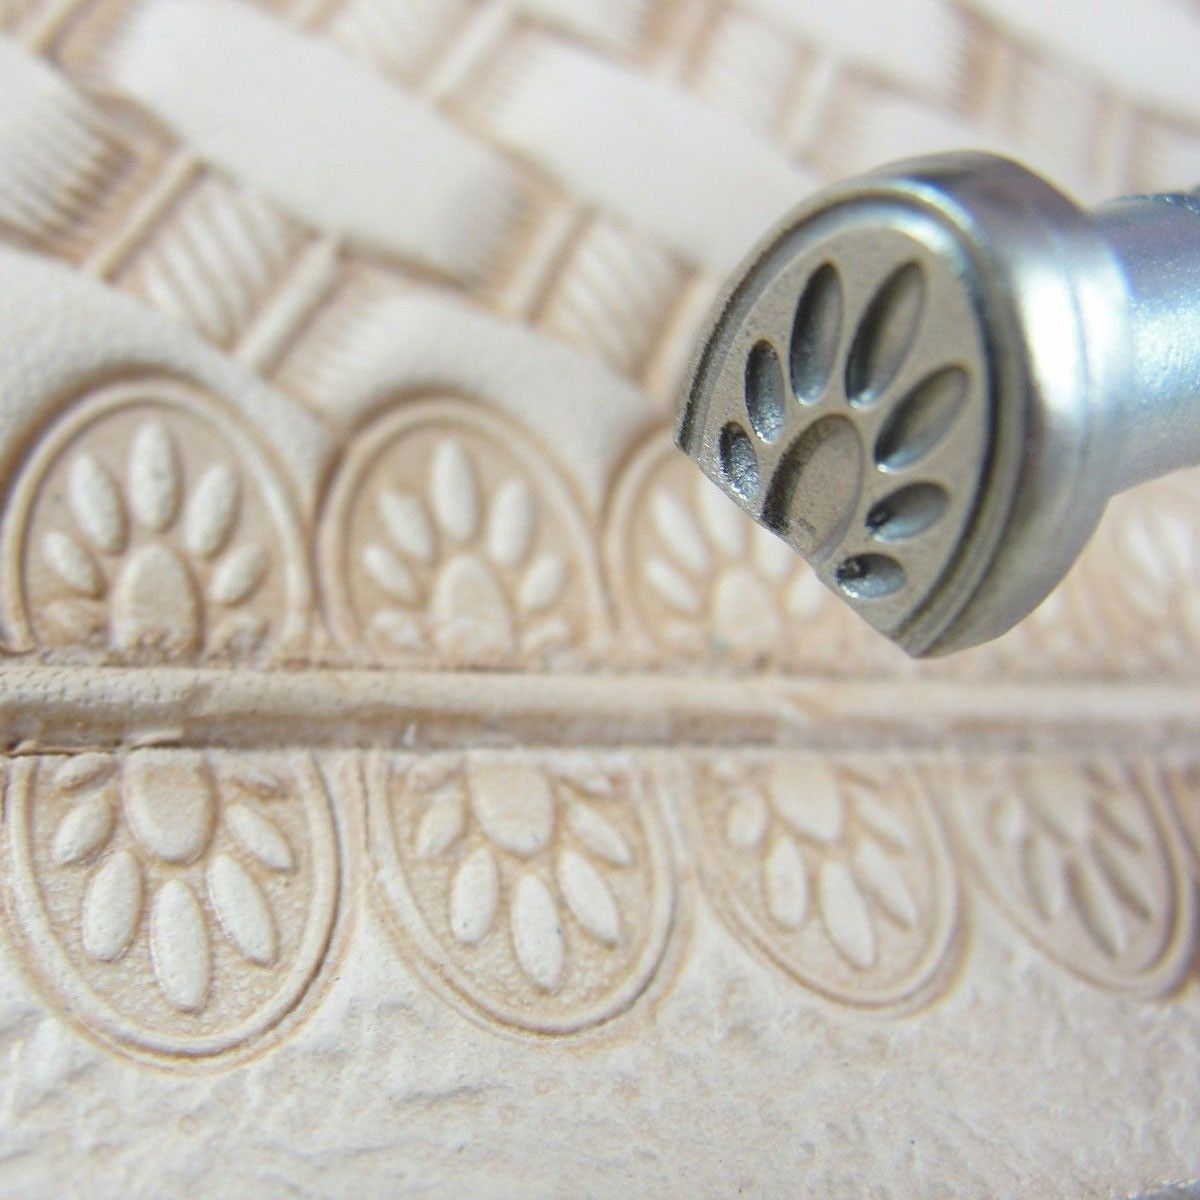 Unbranded leather stamping tool smooth paw print border stamp